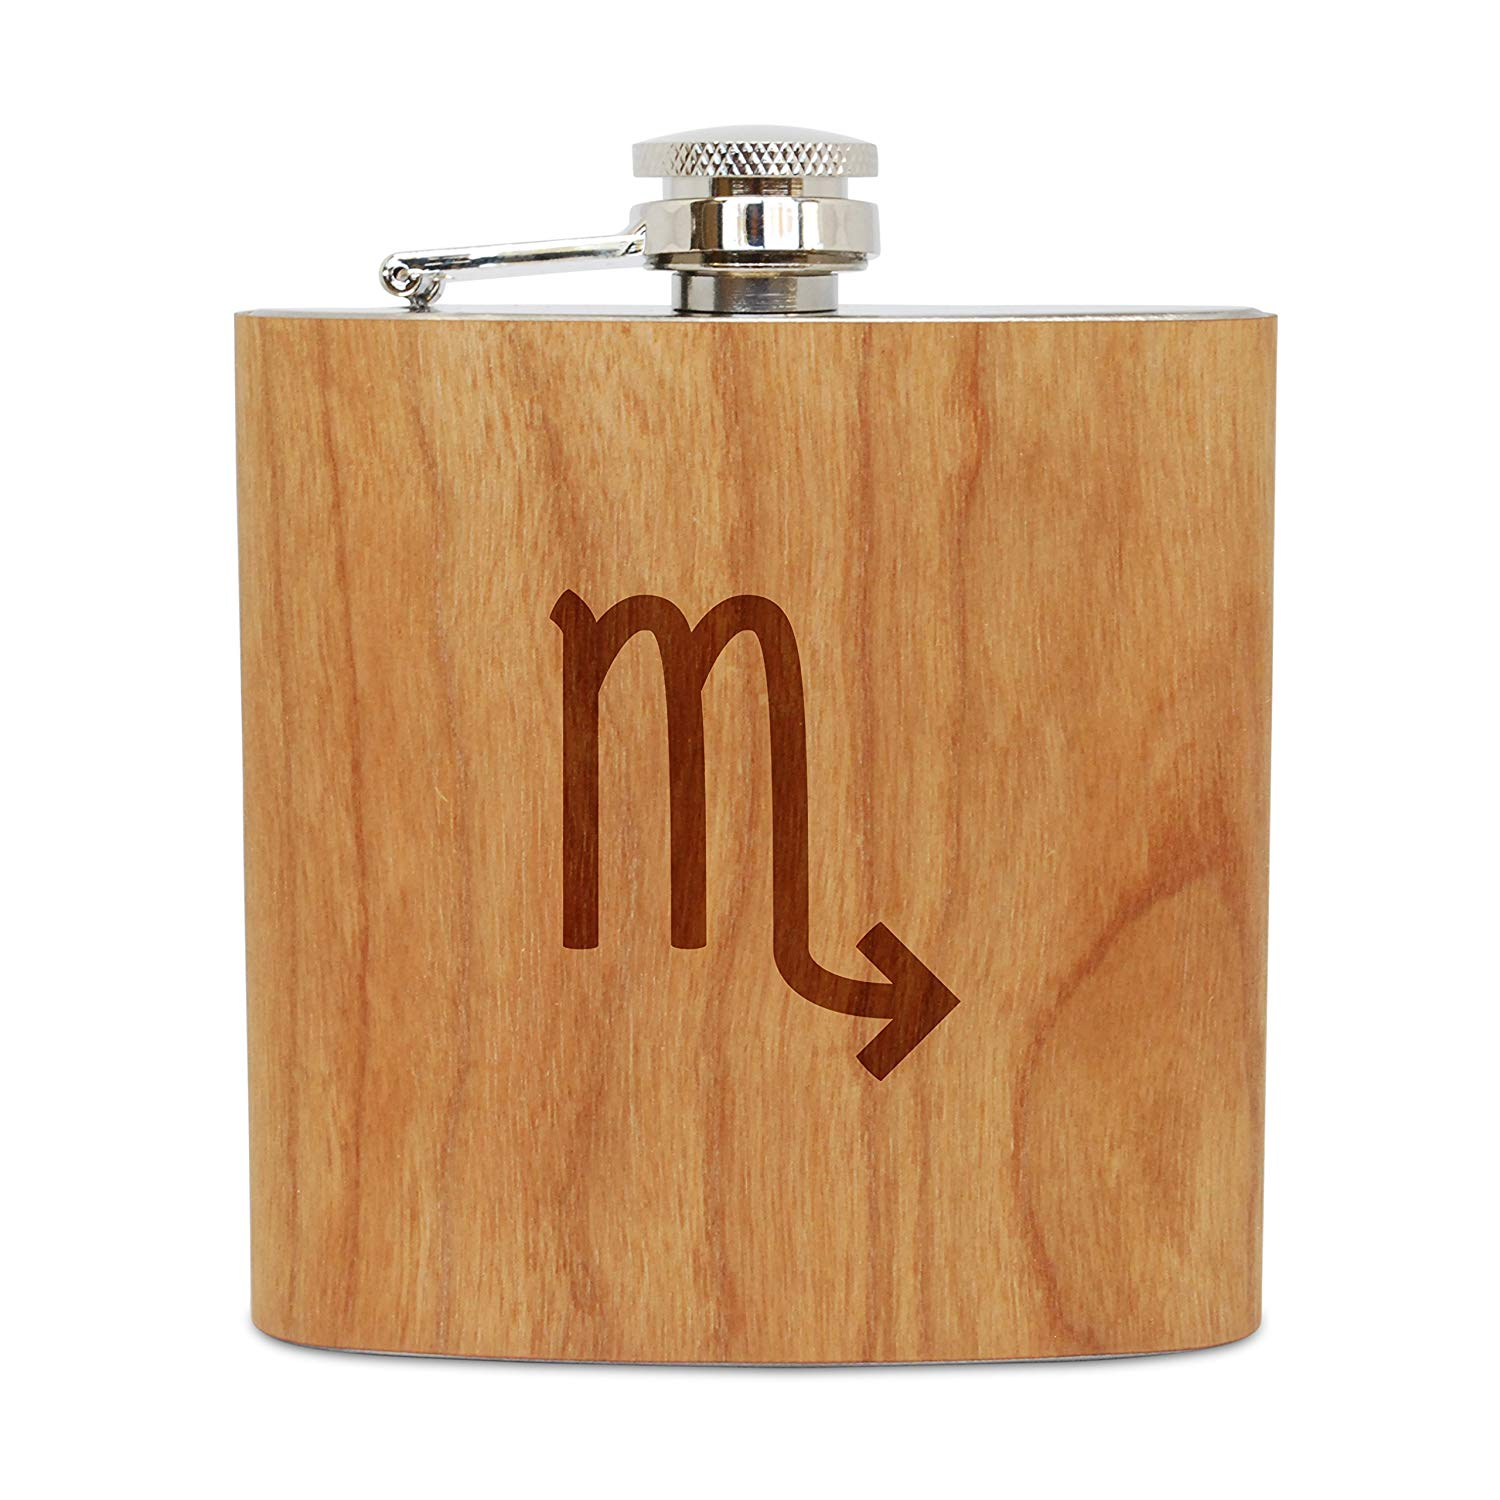 WOODEN ACCESSORIES COMPANY Cherry Wood Flask With Stainless Steel Body - Laser Engraved Flask With Scorpio Design - 6 Oz Wood Hip Flask Handmade In USA